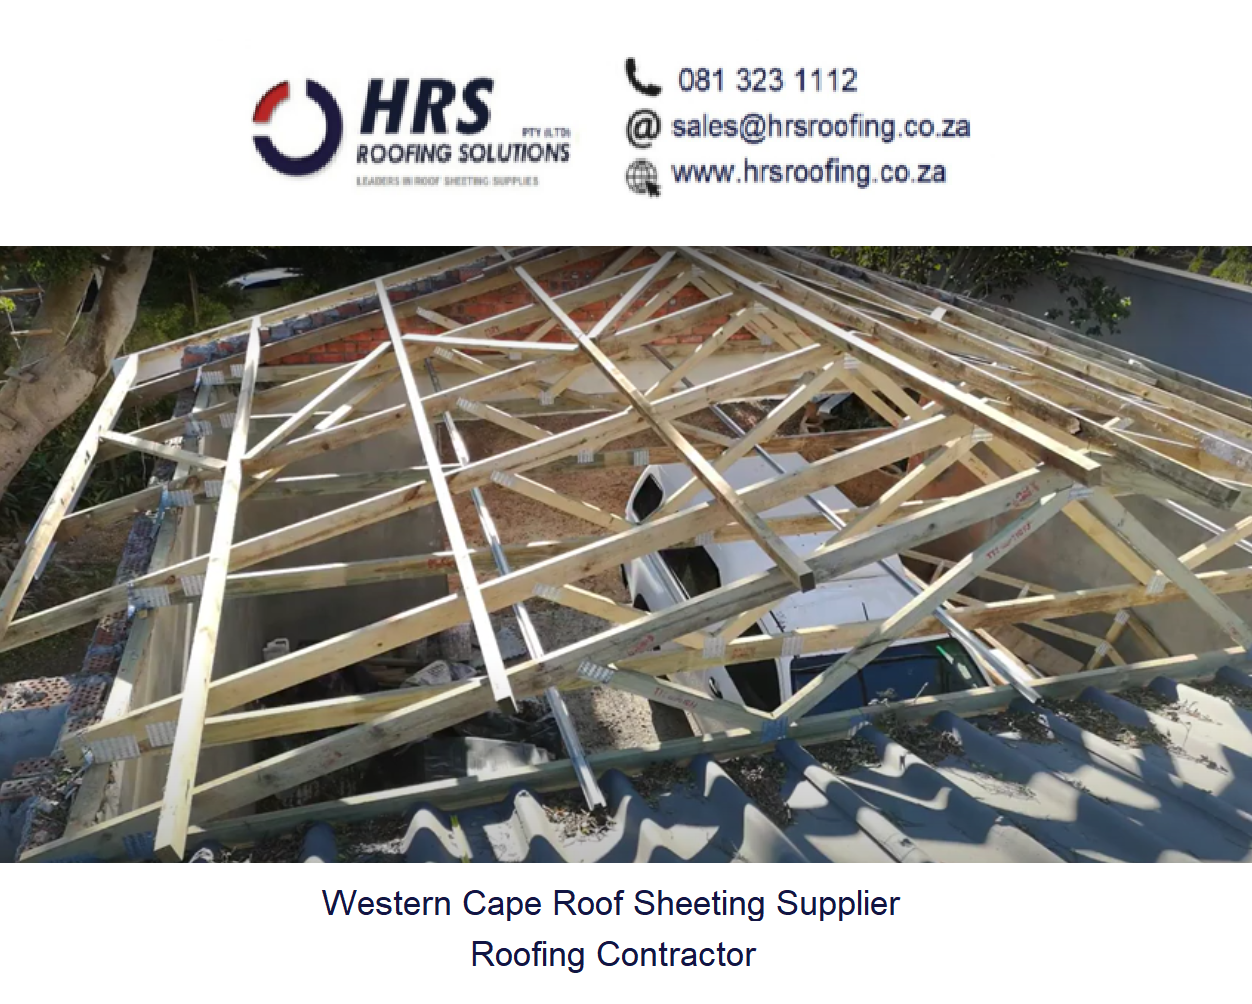 IBR or Corrugated Zincalume or Colorbond roof sheeting supplier deliverirs in Vredendal table view bellville durbanville stellenbosch2 springlok 700 roofing contracot - Roofing Gallery